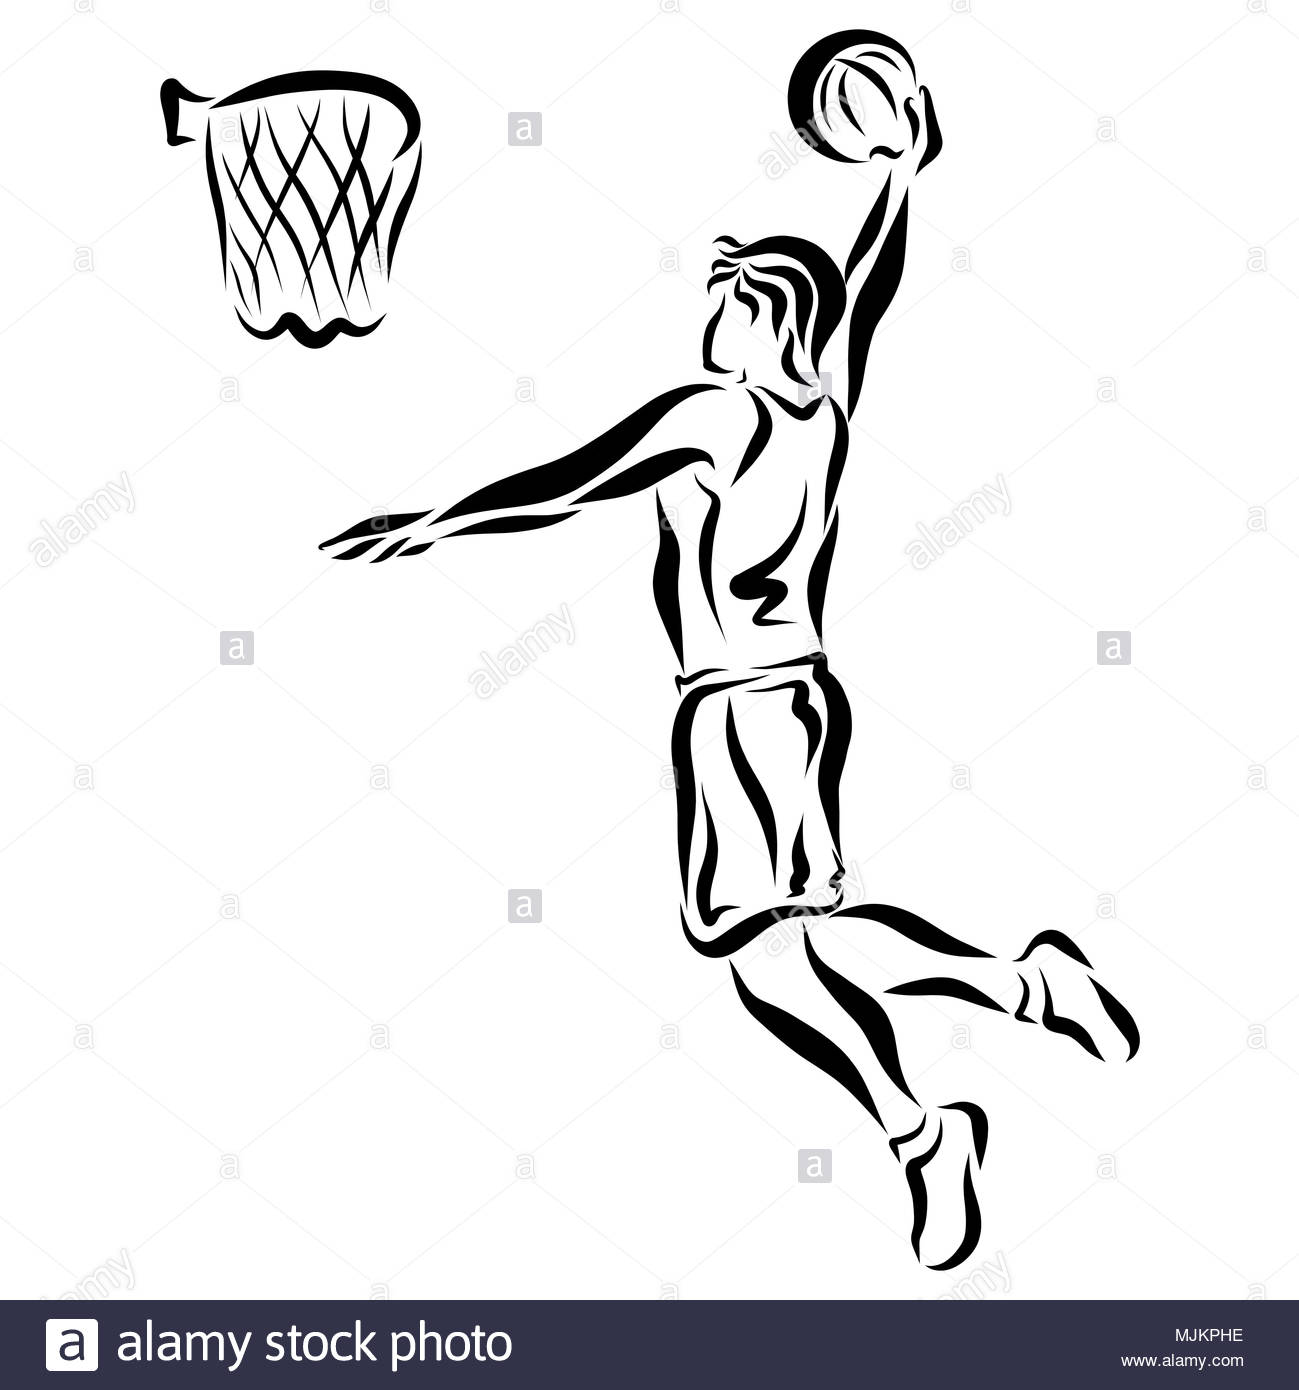 Athlete throws the ball into the basket - Stock Image